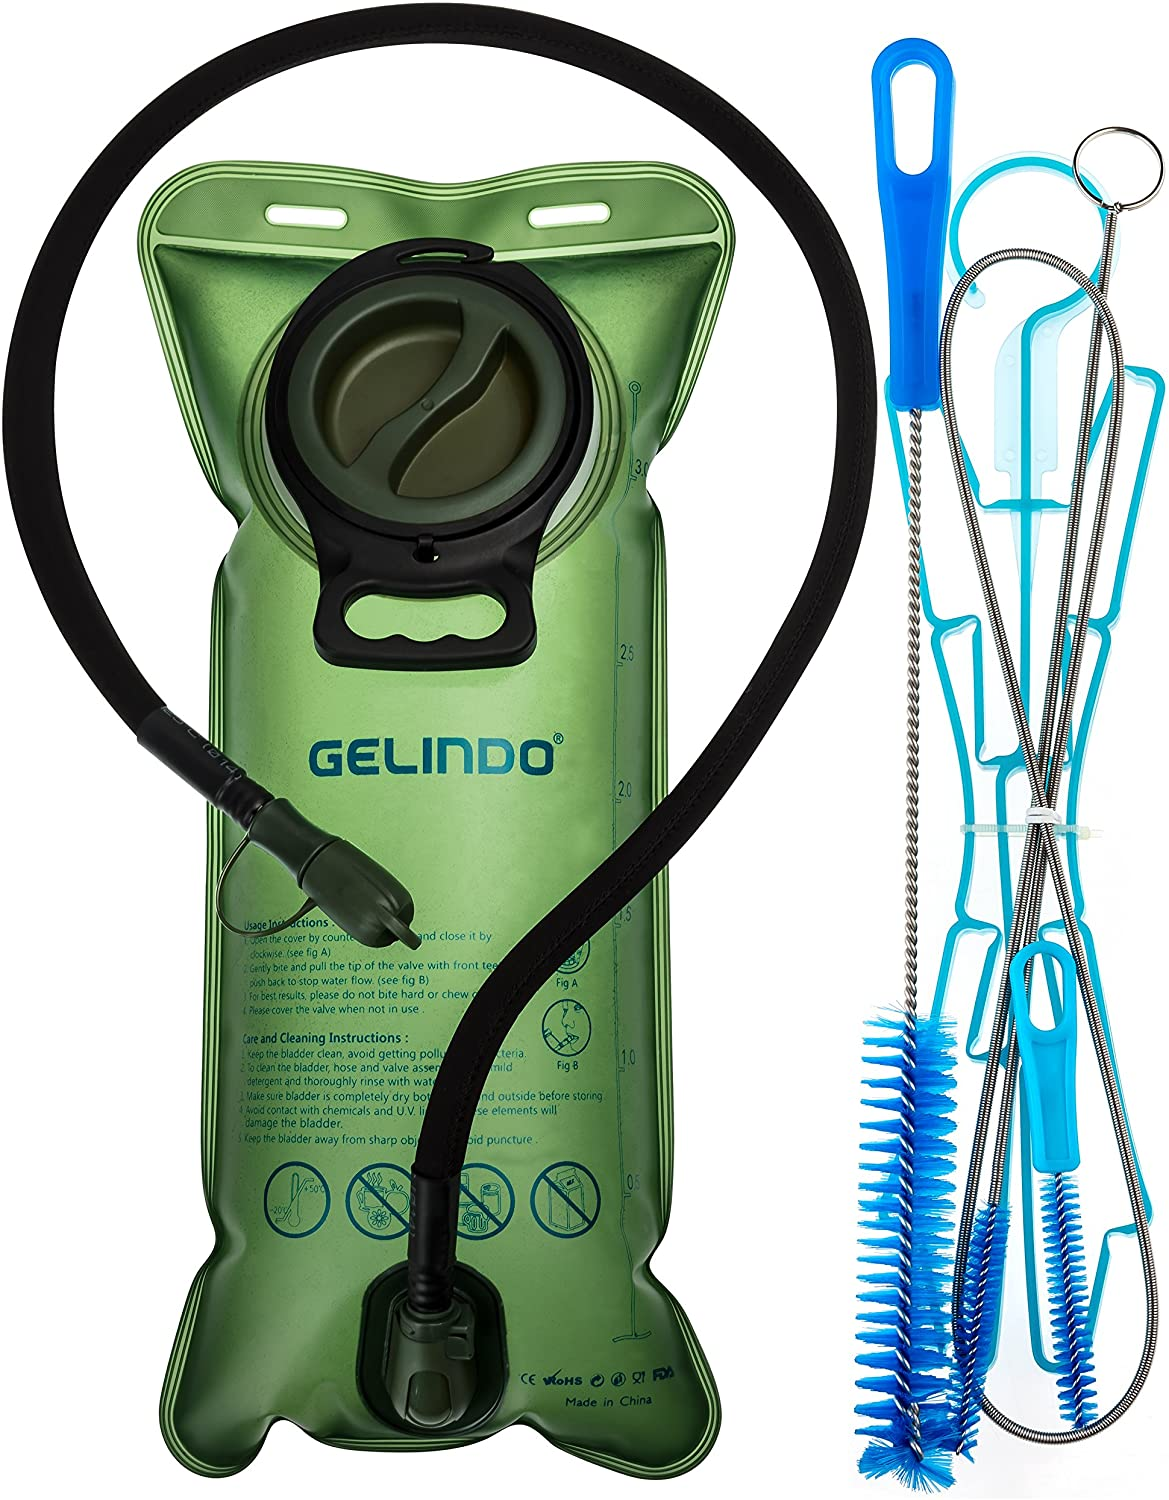 Gelindo Hydration Bladder 3 Liter with Cleaning Kits, Hydration Bladder Brush and BPA-Free Water Backpack Replacement, Large Opening and Quick Release Tube with Shutoff Valve for Hiking Biking Outdoor